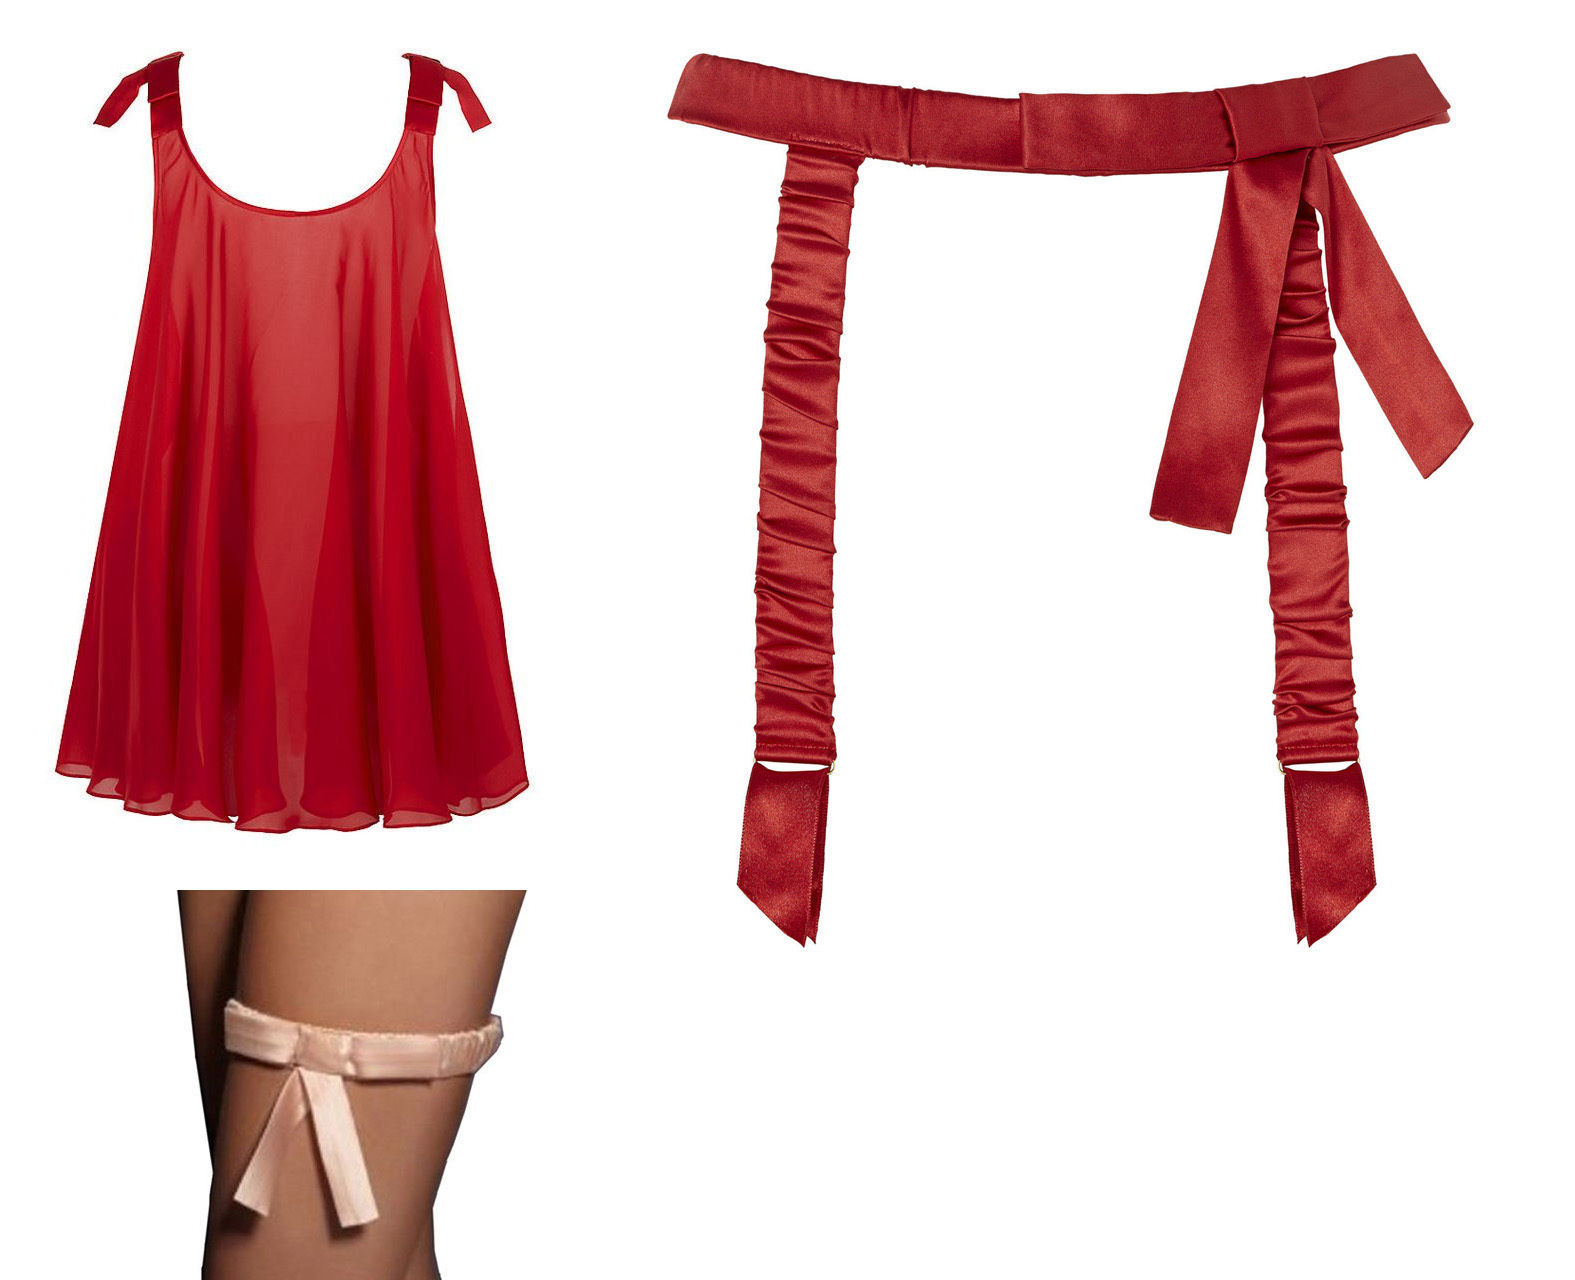 S l1600. S l1600. Previous. AGENT PROVOCATEUR Birthday Suit Silk Scarlet  Red Babydoll or Silk ... 63ab74983